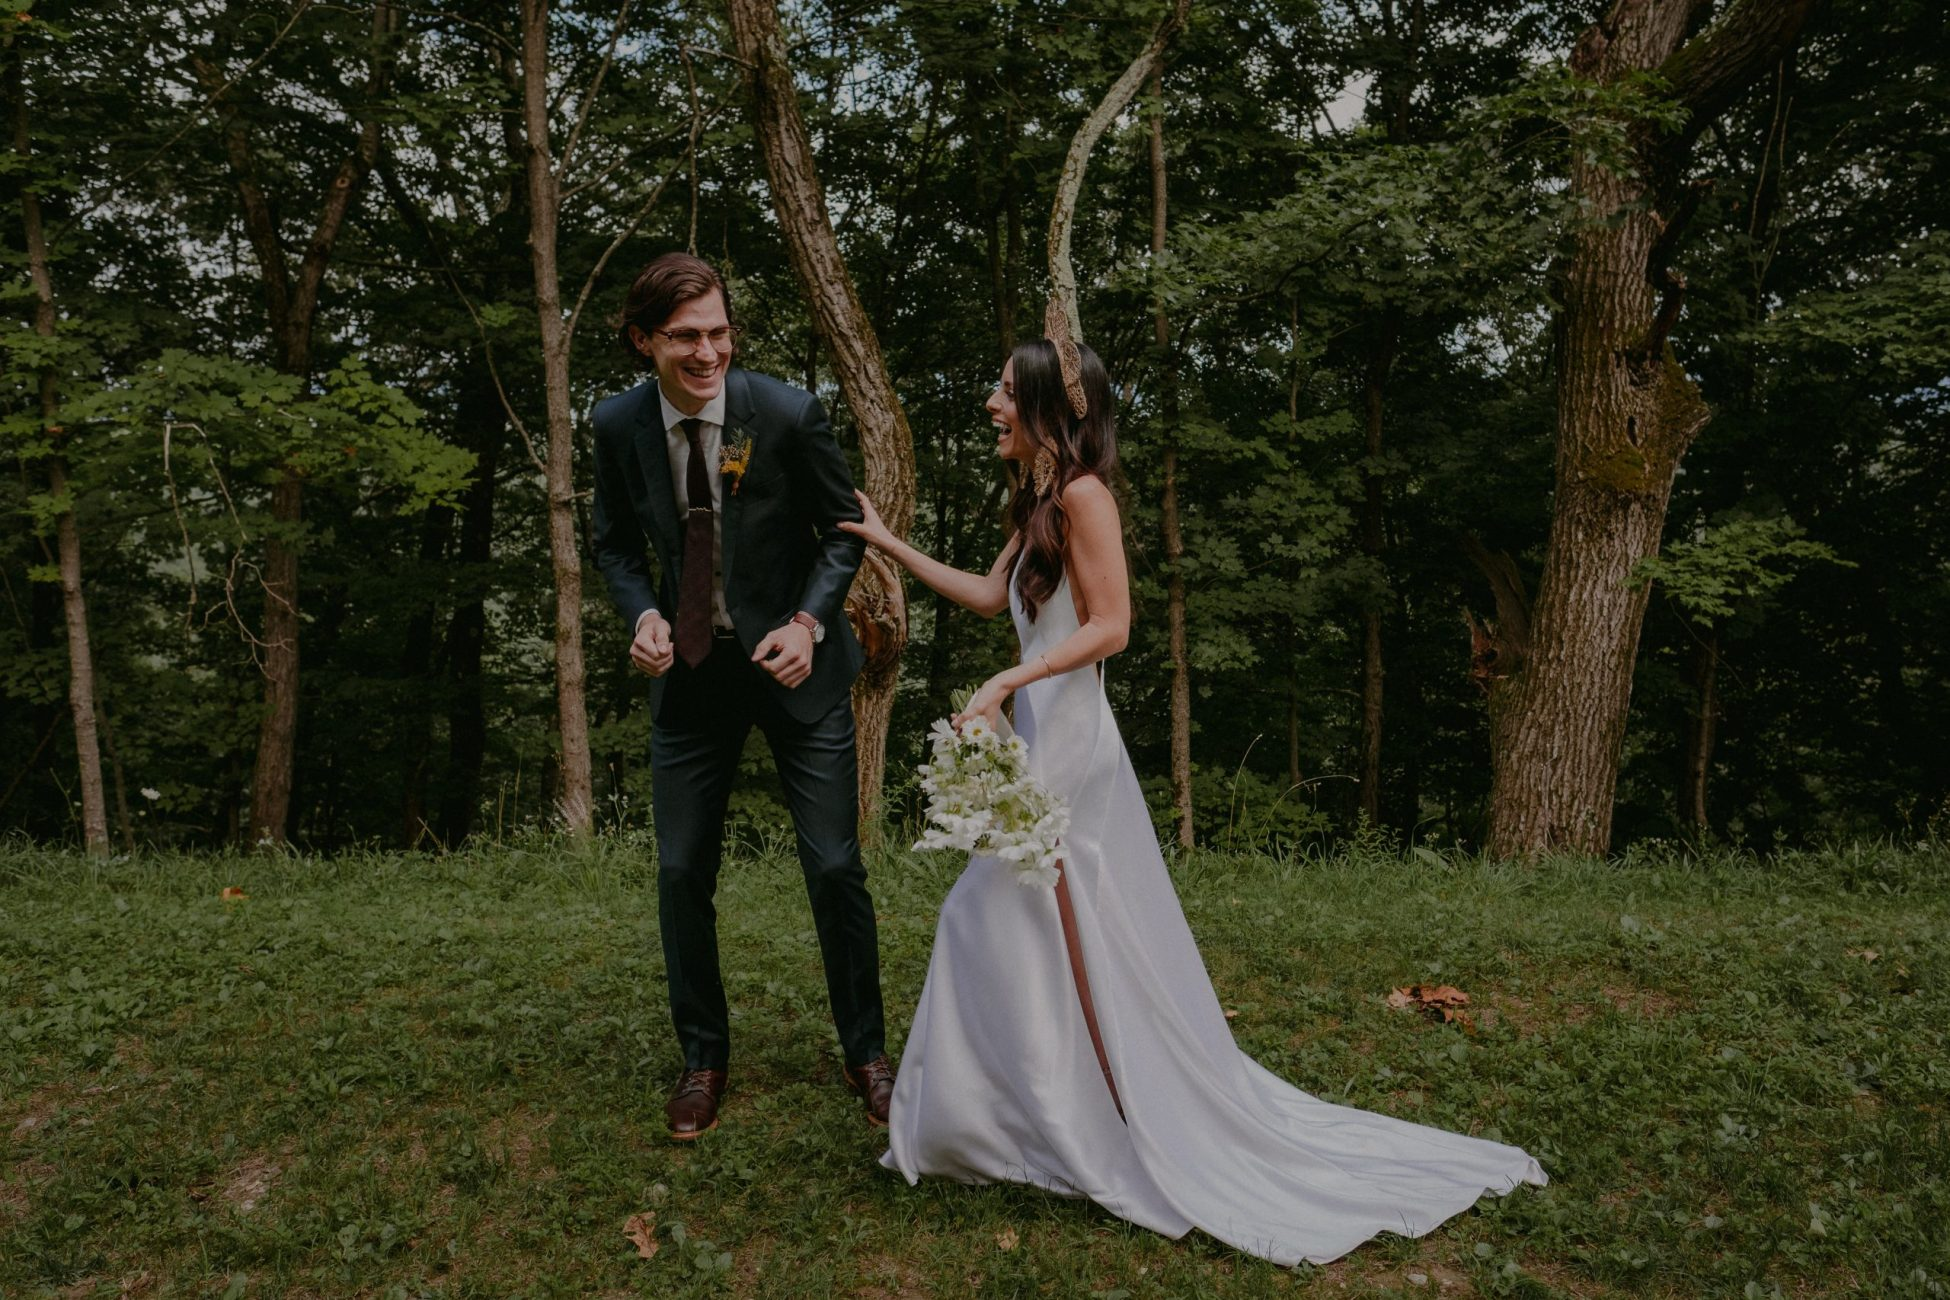 boho upstate new york wedding wild and organic outdoors